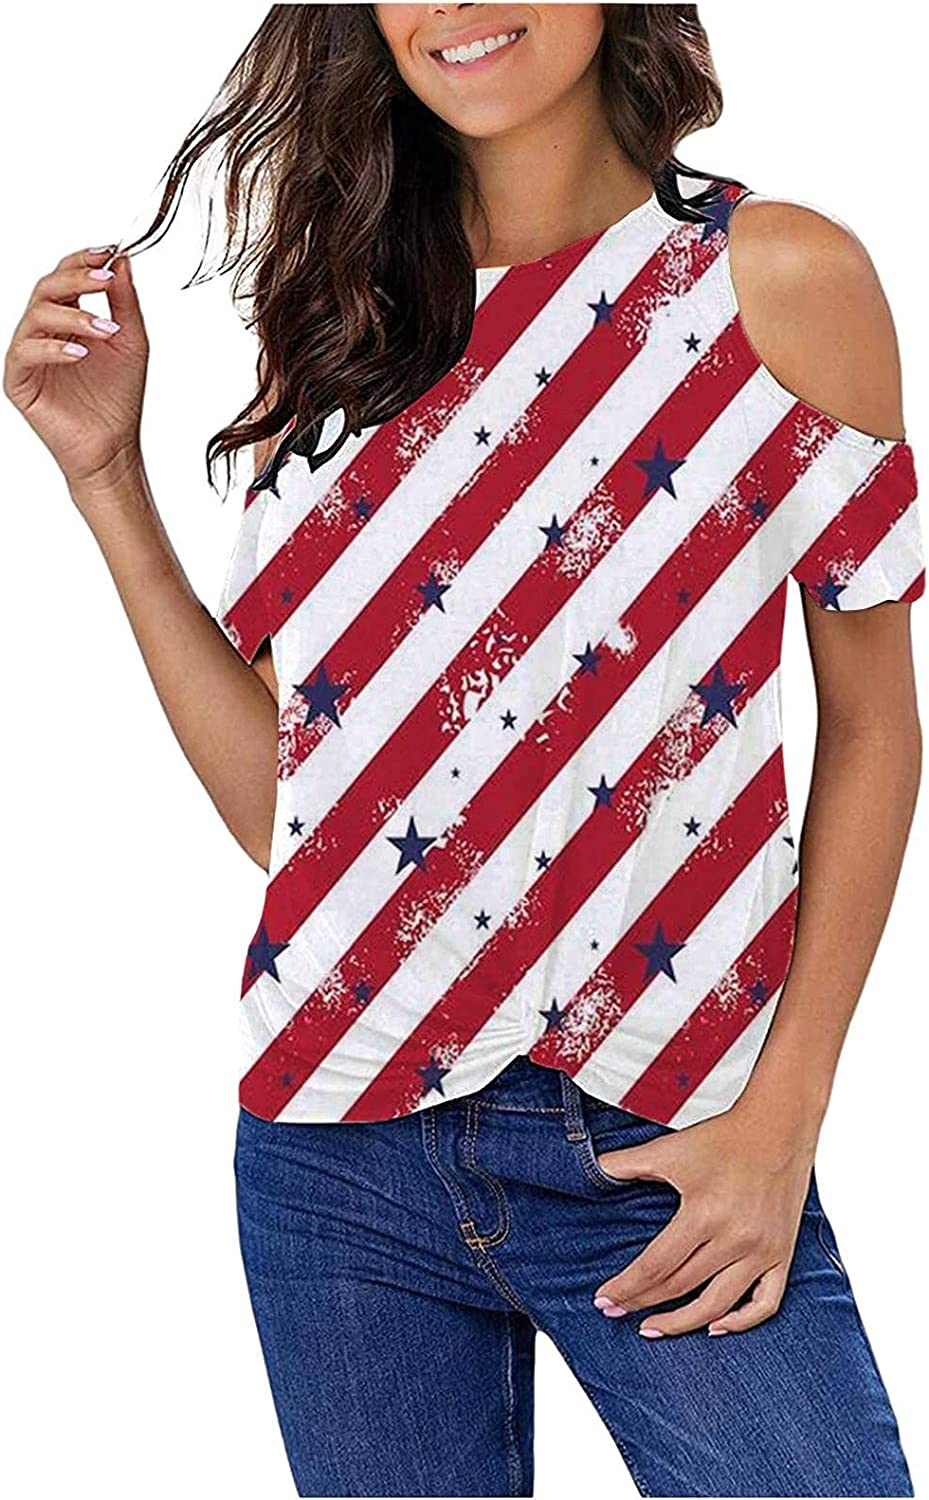 RKSTN Summer Tops Directly managed store for Women Max 76% OFF Shoulder Casua Cold Strappy T-Shirt